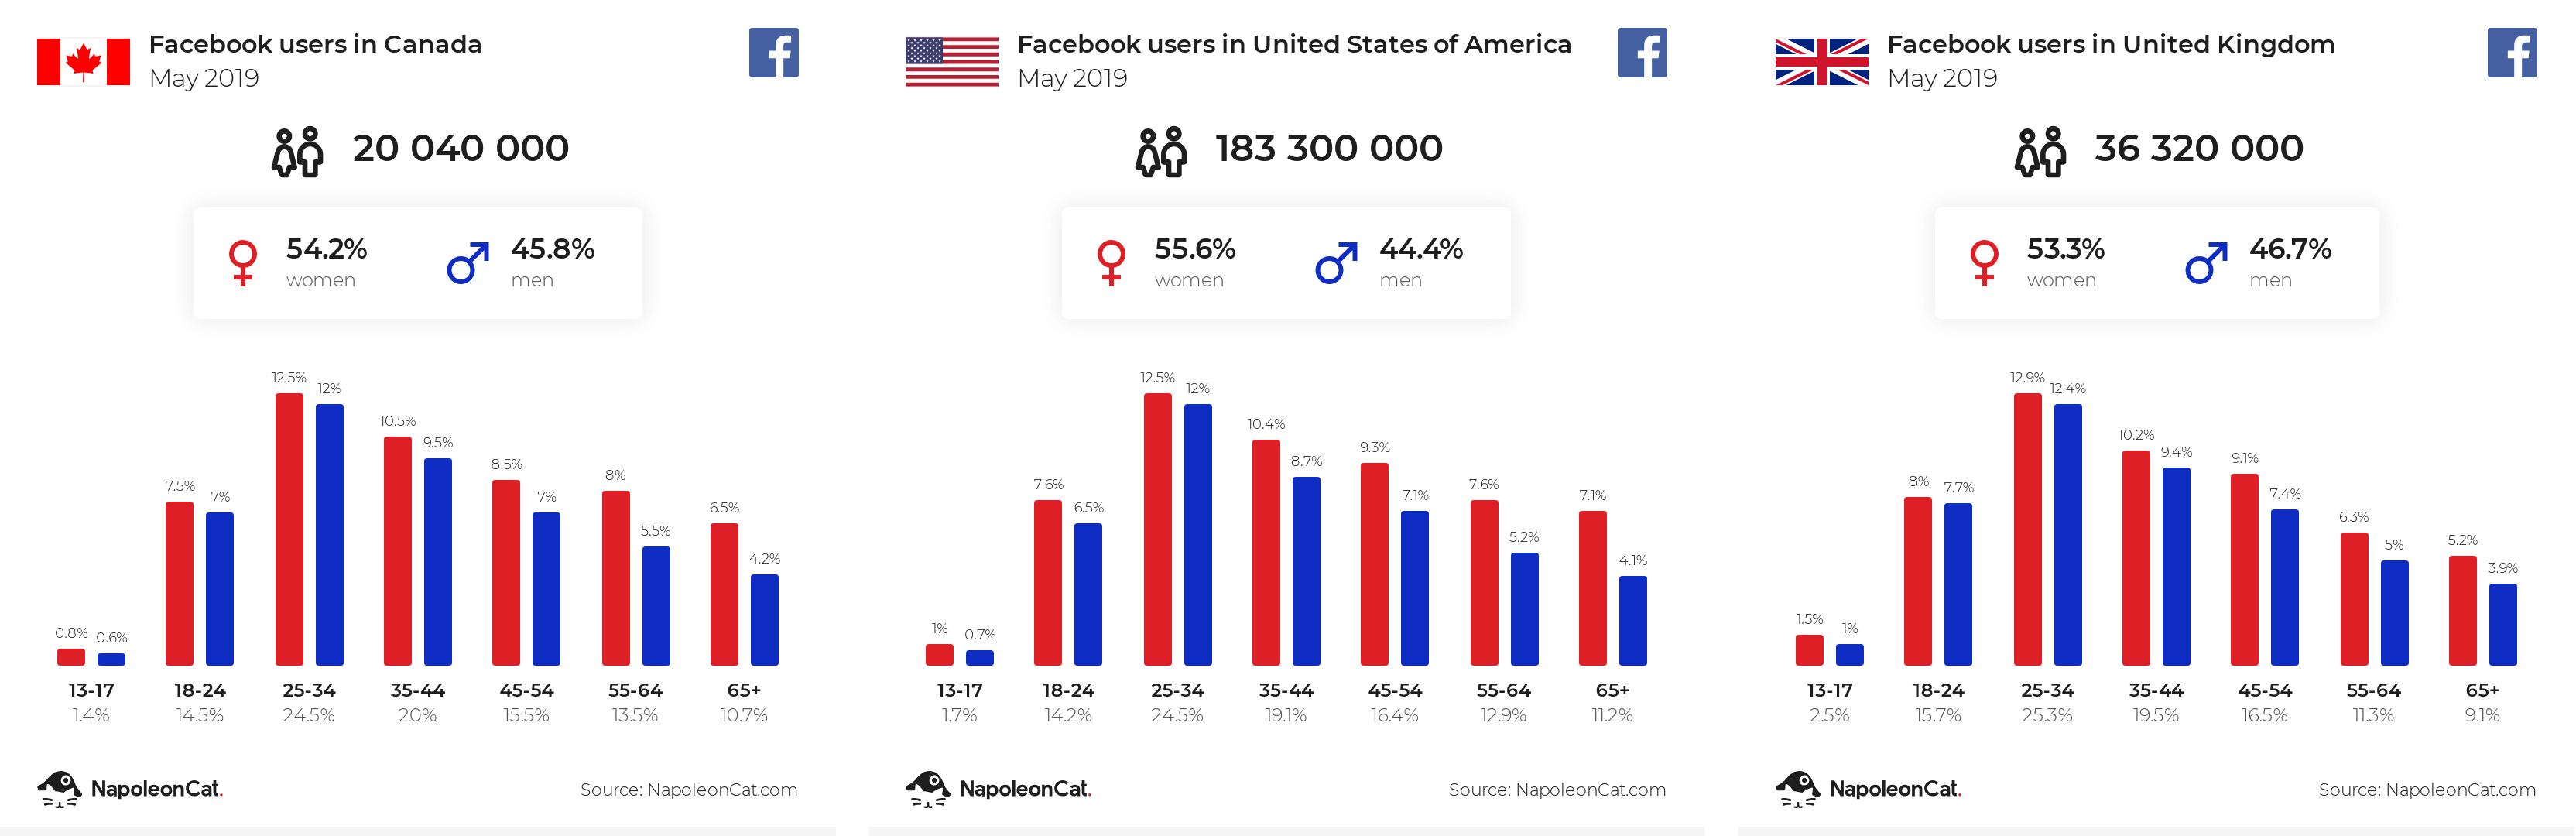 Facebook users in Canada, United States and United Kingdom